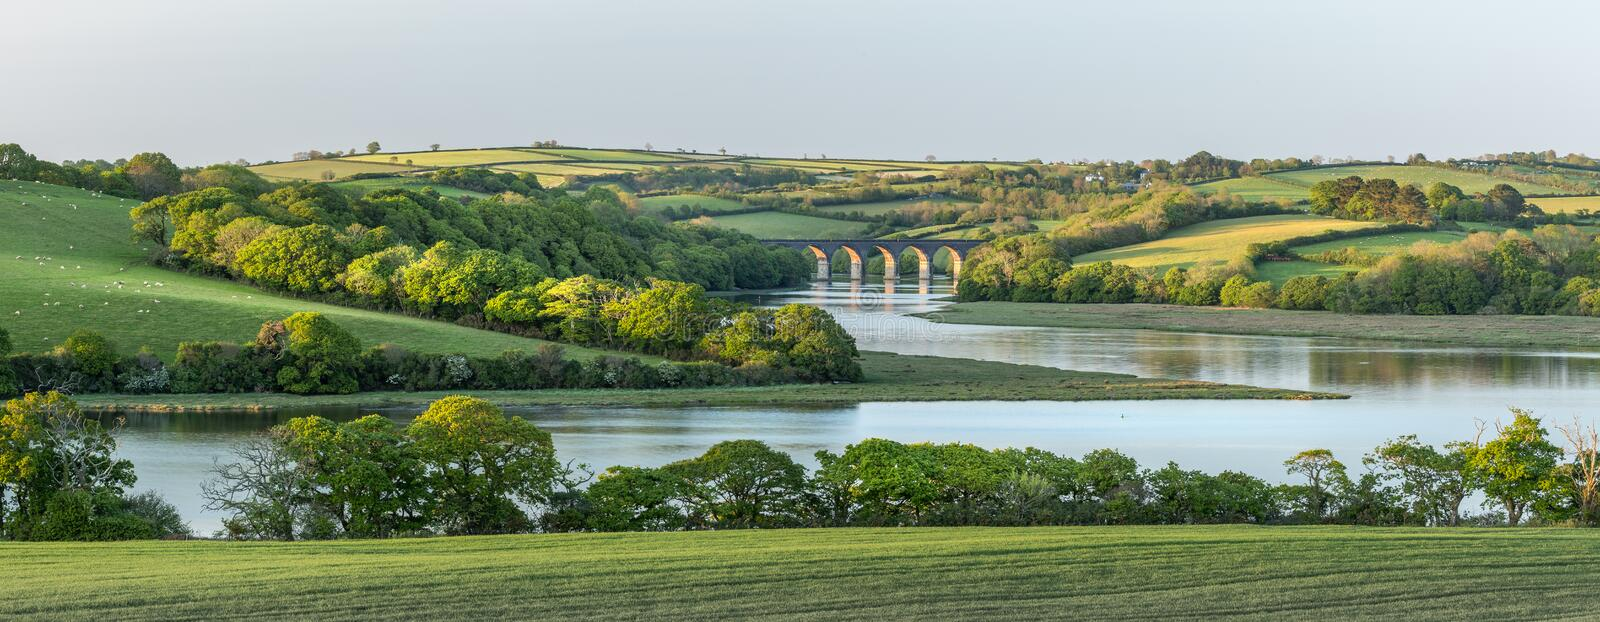 Golden Light over the Notter Viaduct, River Lynher, Cornwall stock photos